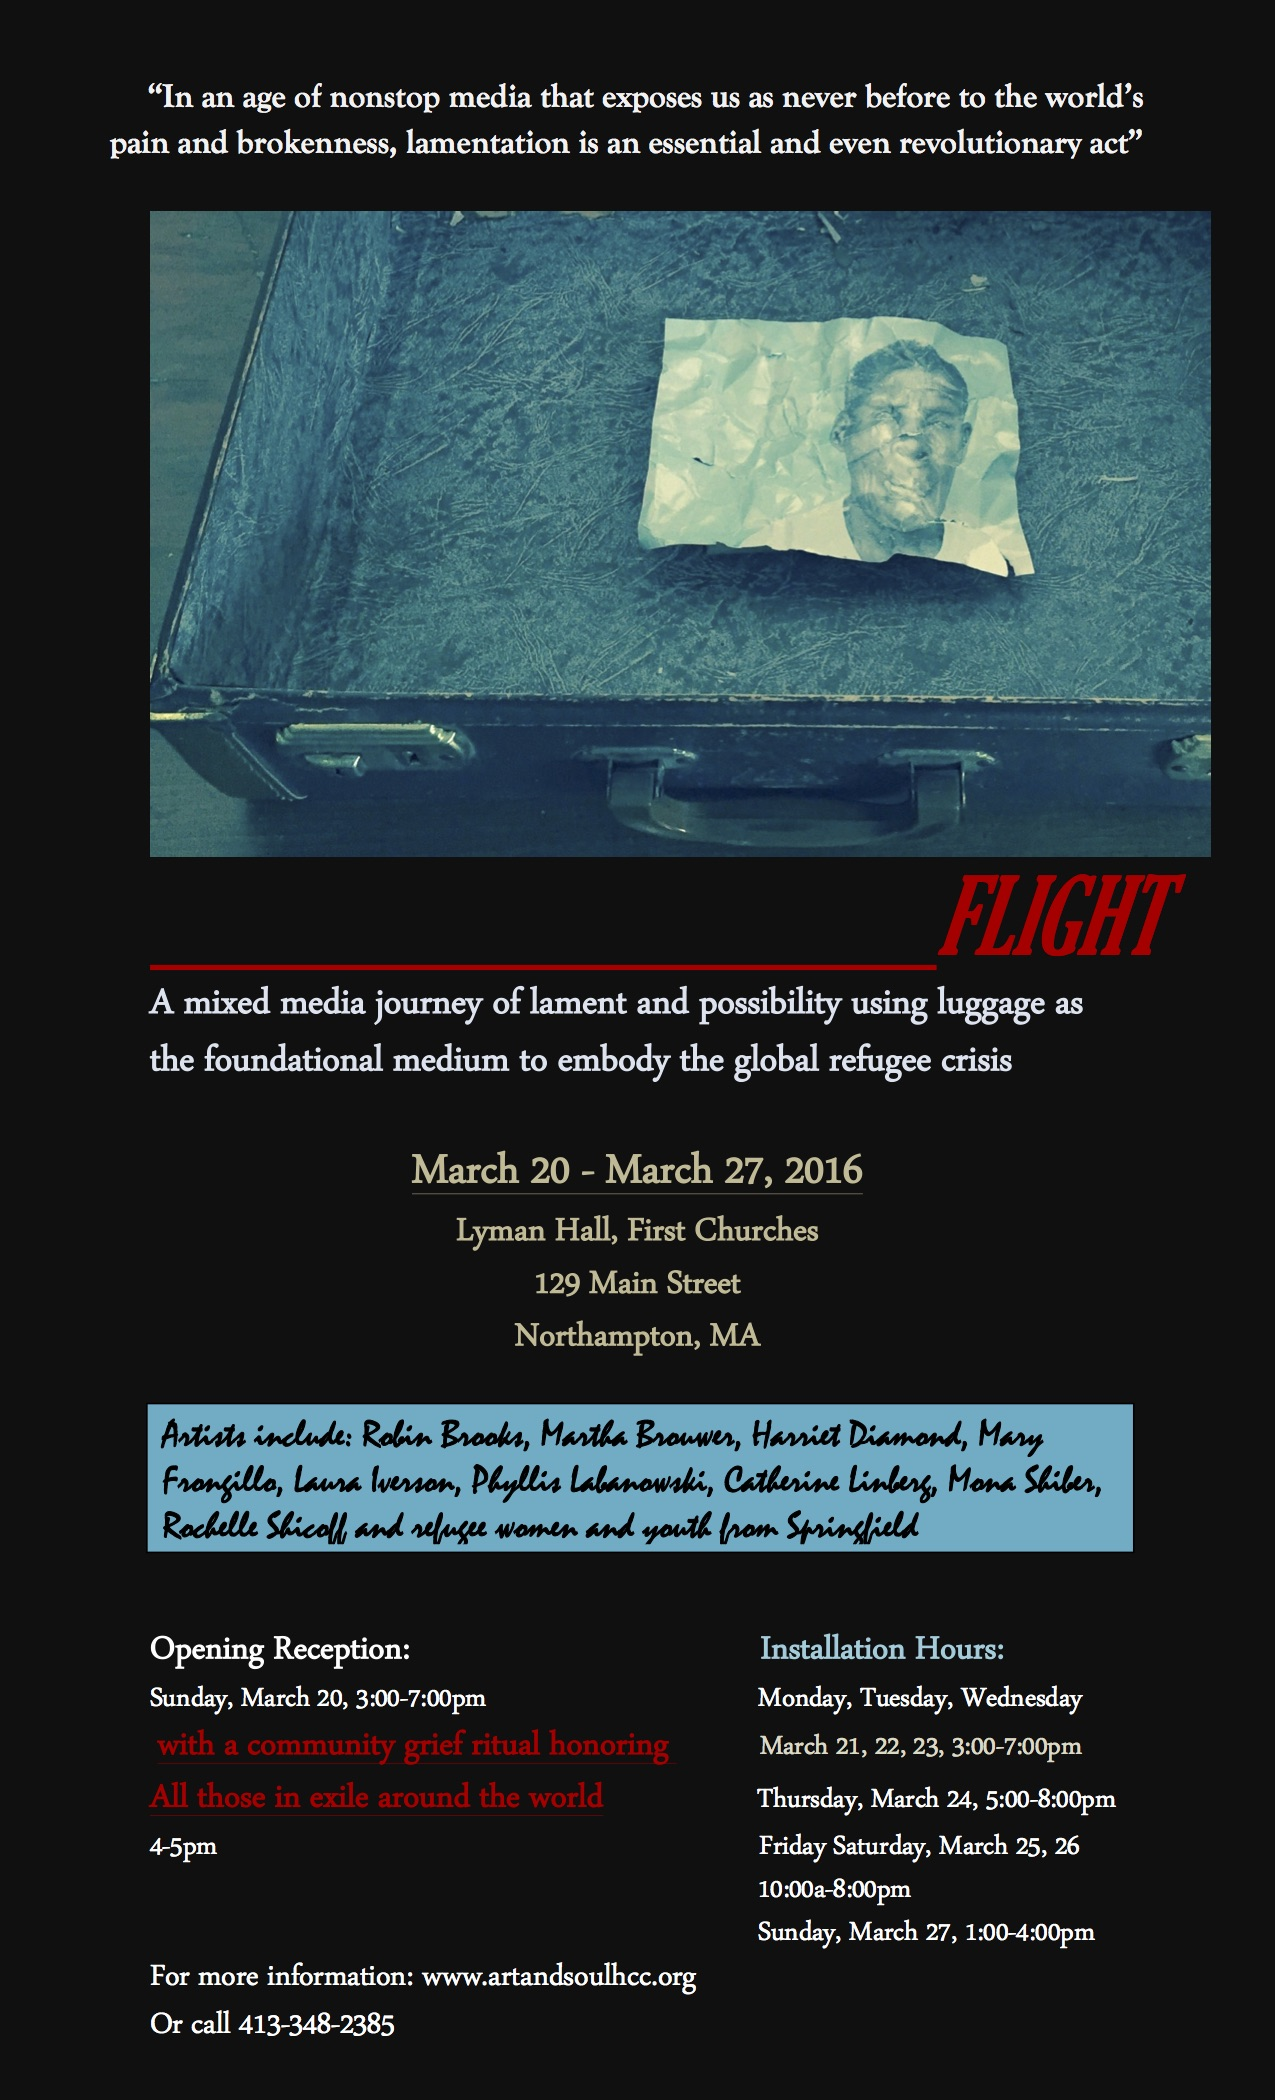 FLIGHT Flier